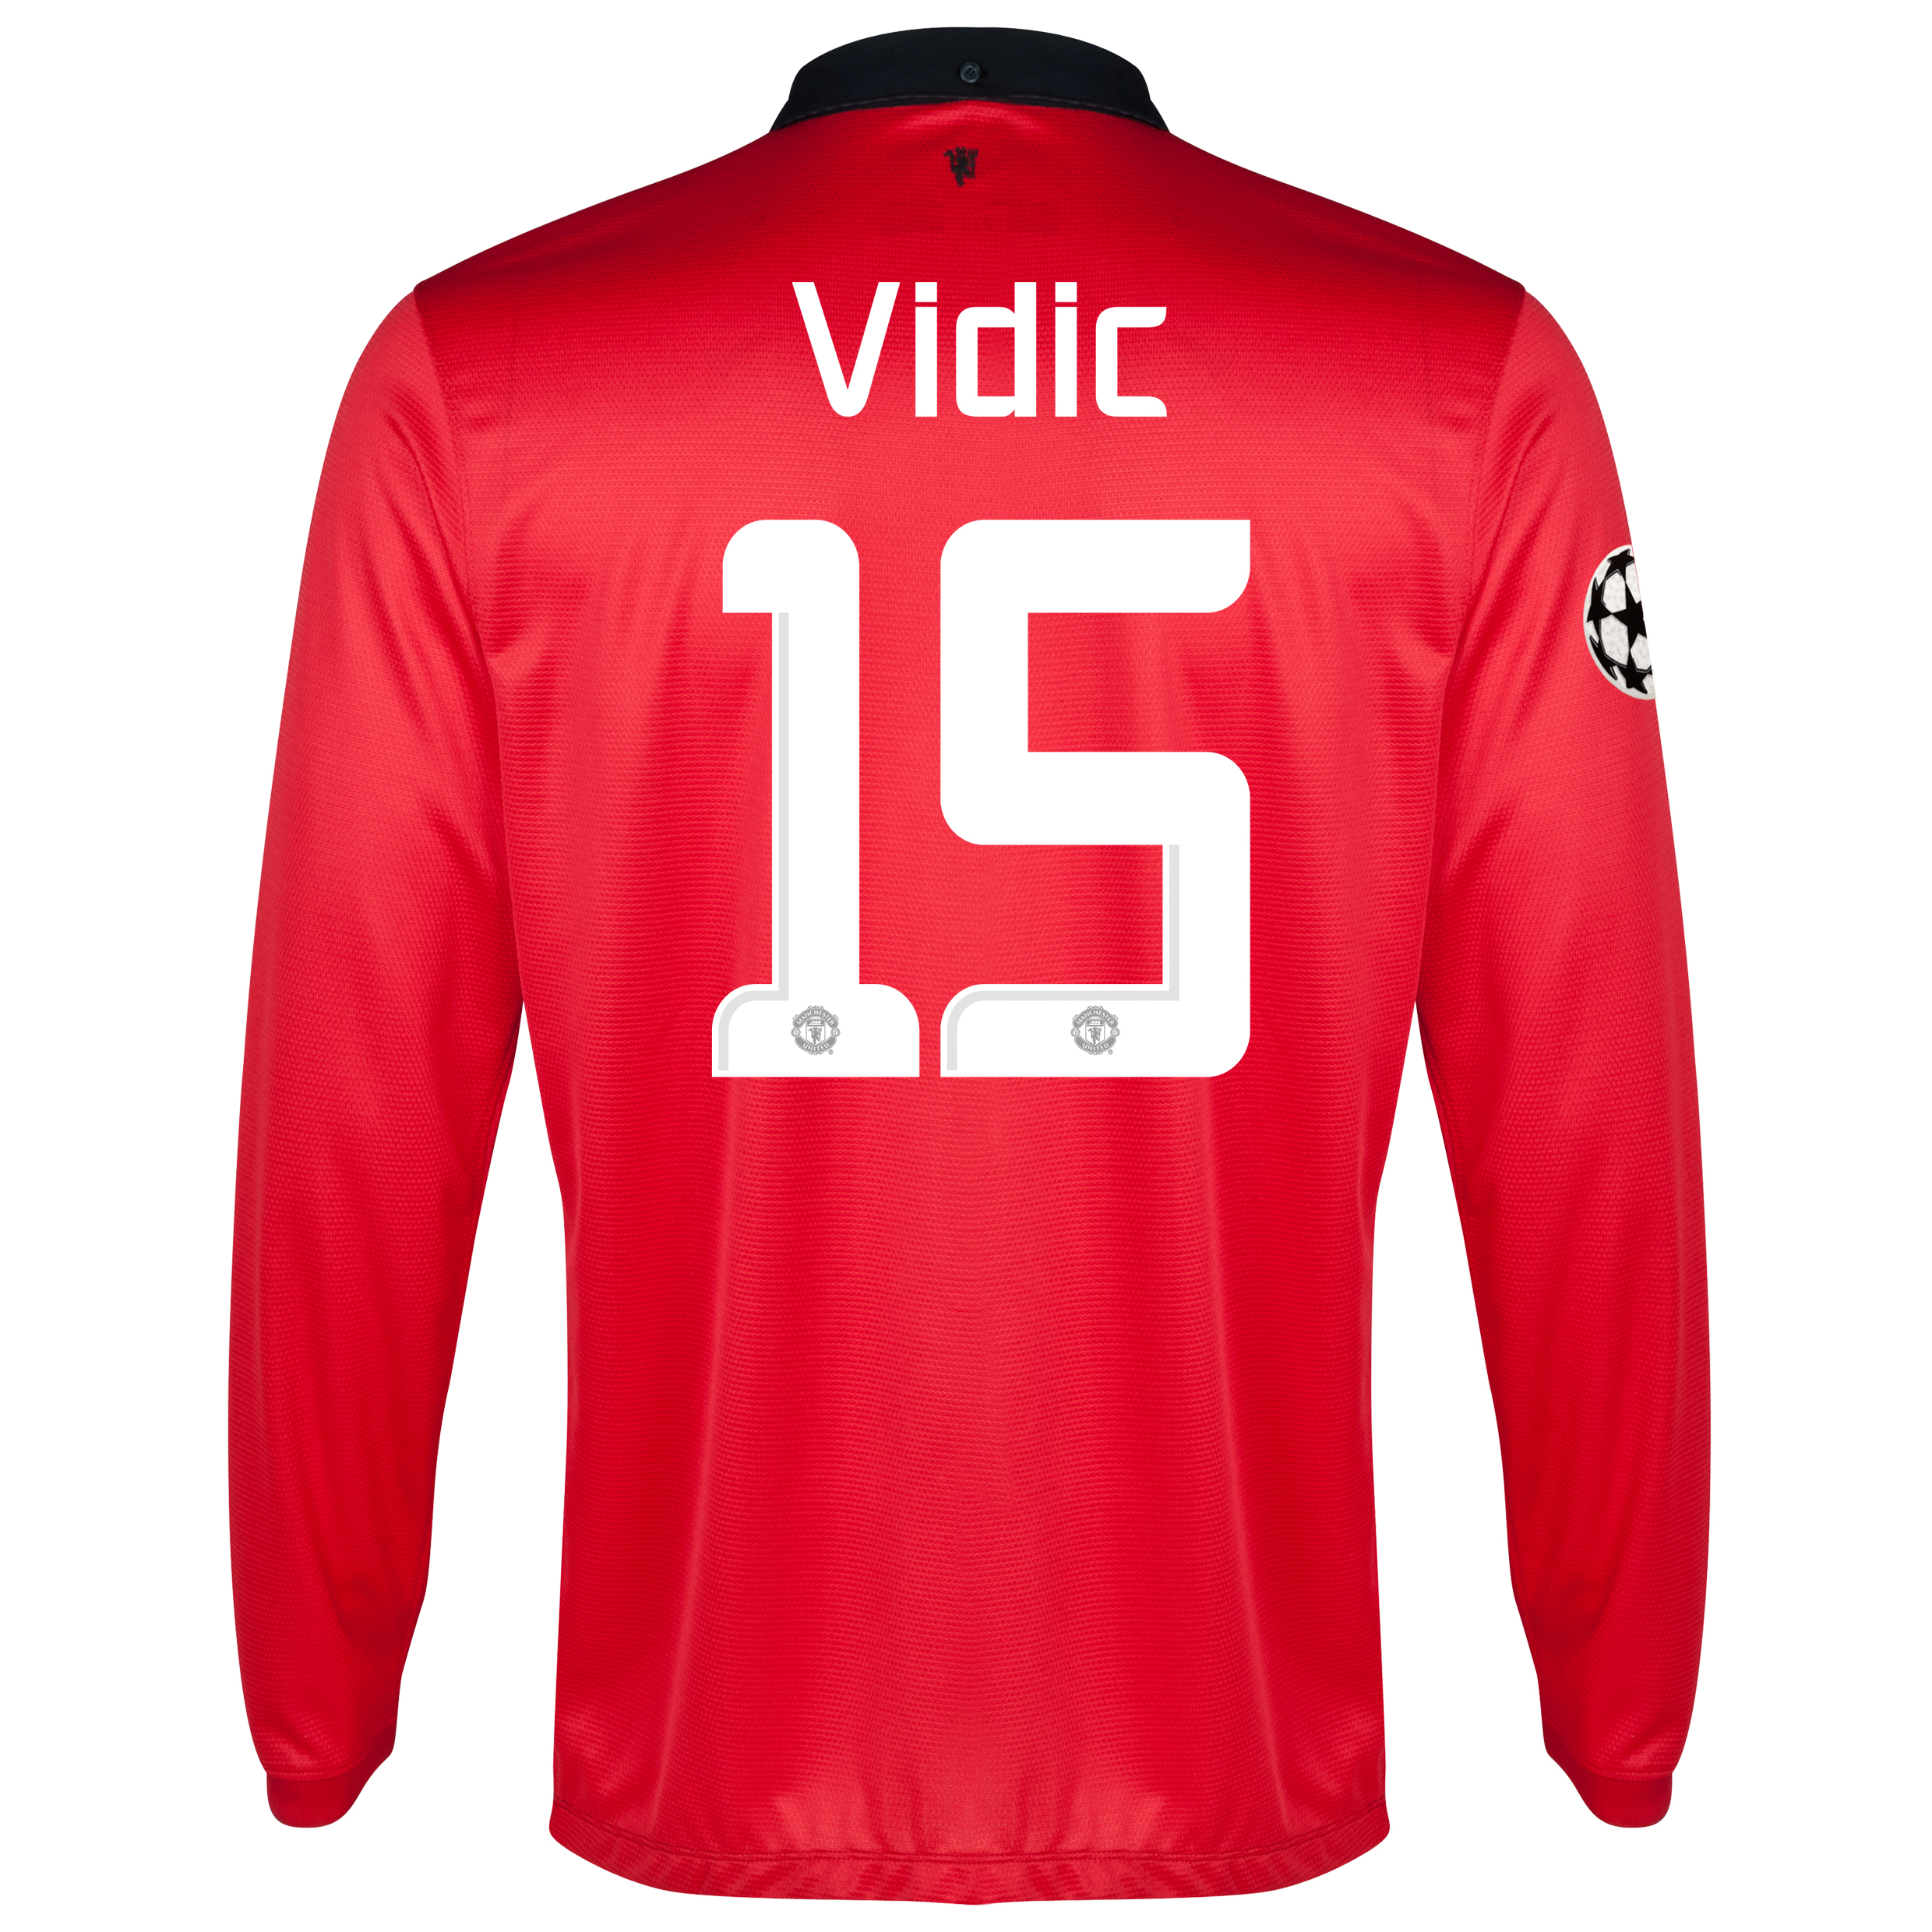 Manchester United UEFA Champions League Home Shirt 2013/14 - Long Sleeved with Vidic 15 printing